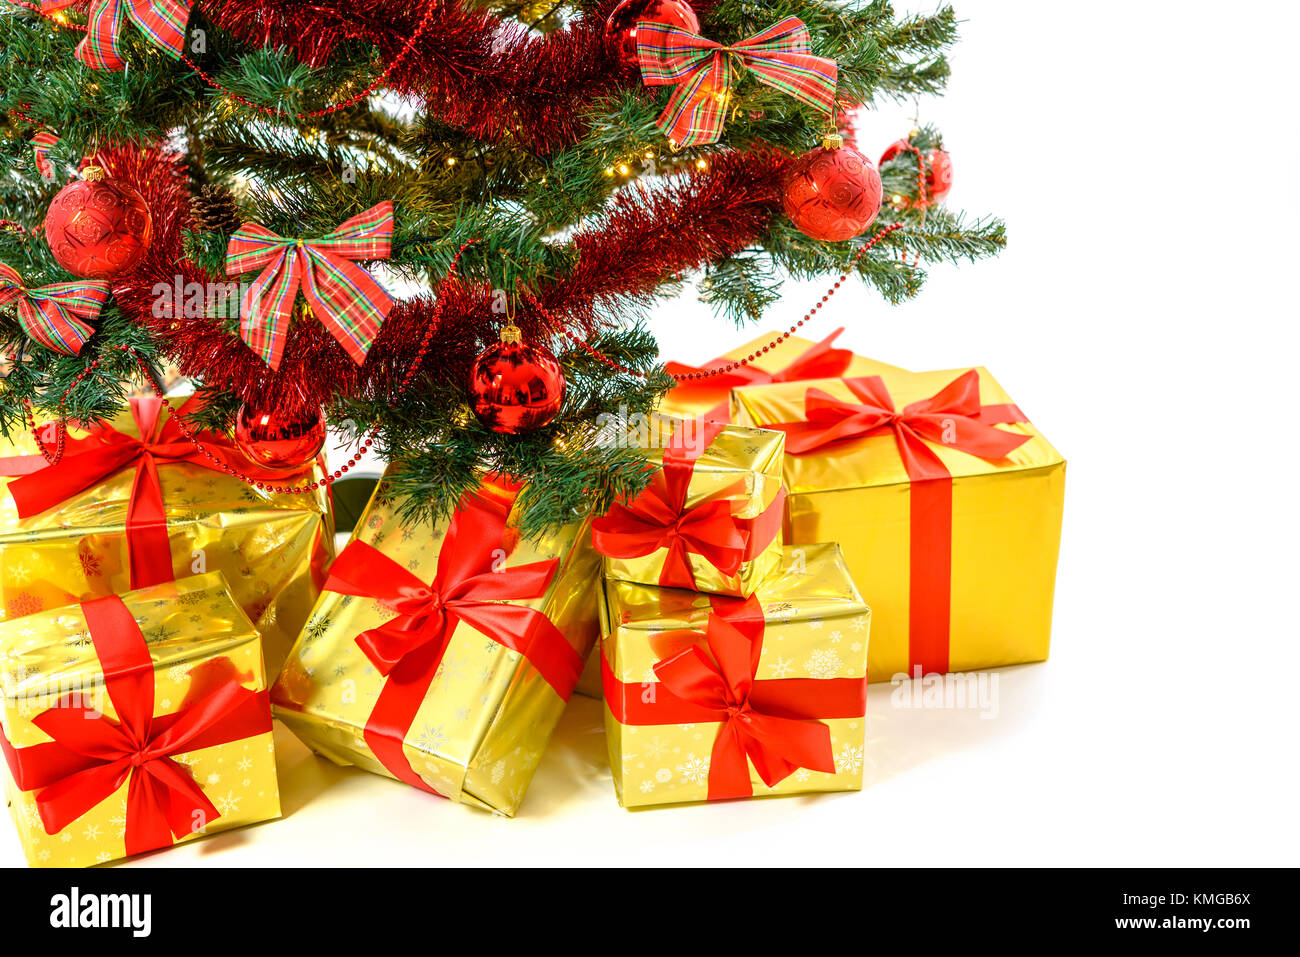 luxury golden colored gifts with red ribbon under a beautiful christmas tree with red balls bows and lights isolated on white background in close up